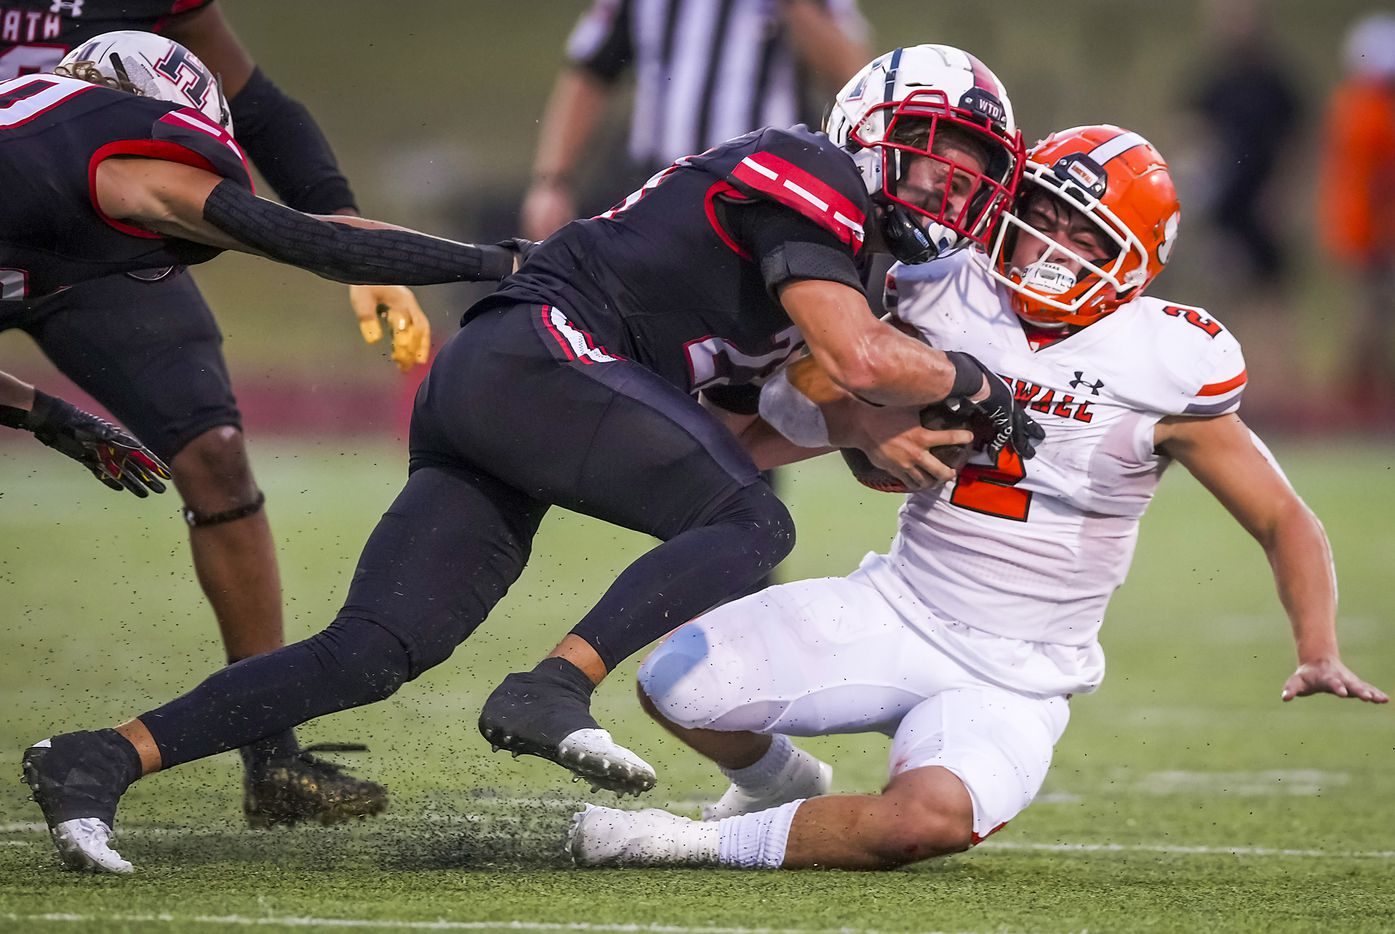 Rockwall running back  Zach Hernandez (2) is brought down by Rockwall-Heath linebacker Noah Wilson (23) during the first half of a District 10-6A high school football game at Wilkerson-Sanders Stadium on Friday, Sept. 24, 2021, in Rockwall.